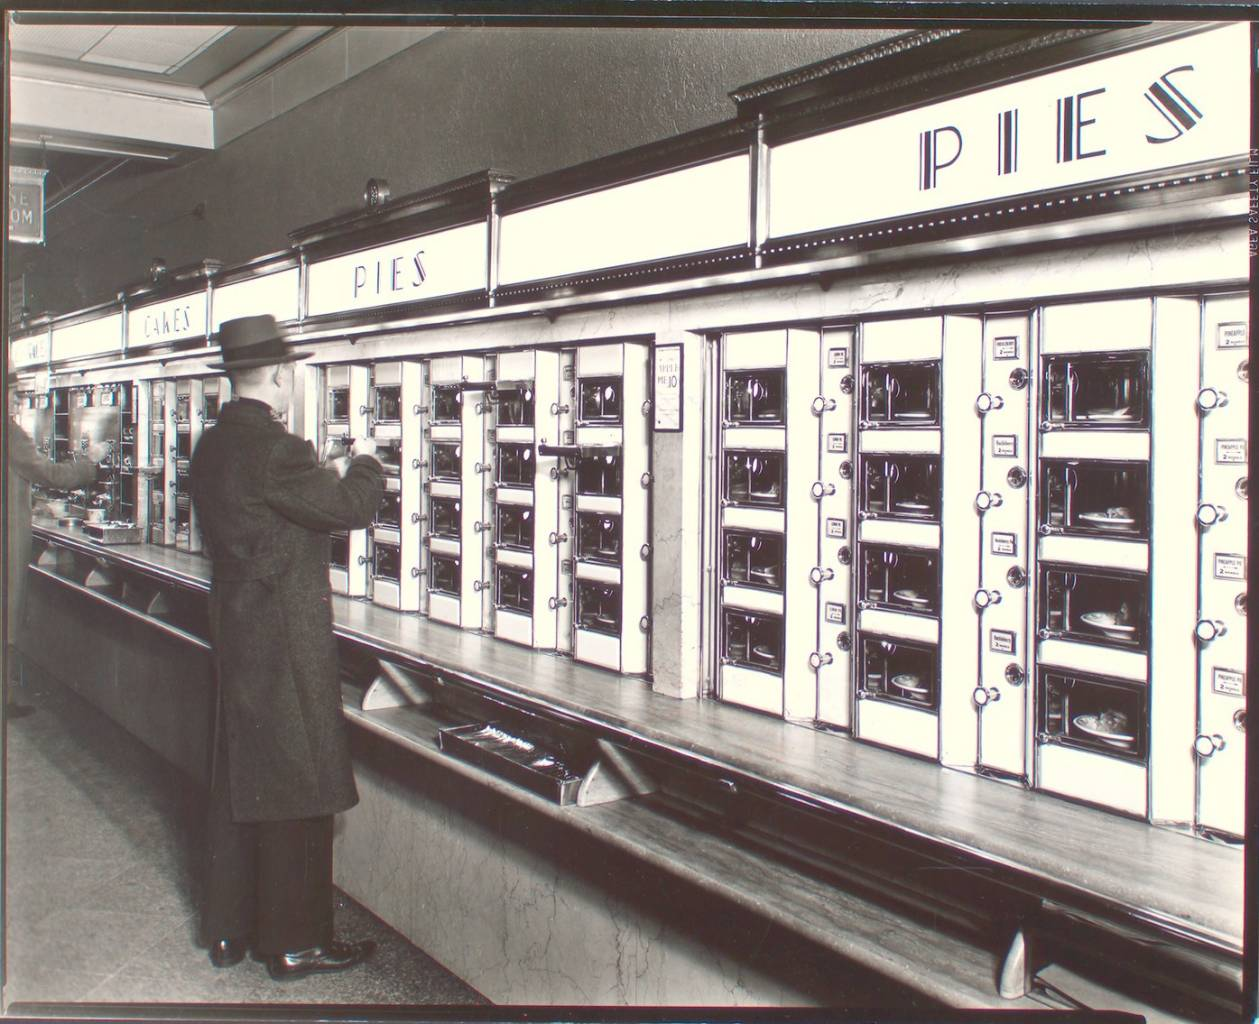 Automat, 977 Eighth Avenue, Manhattan, New York, 1936